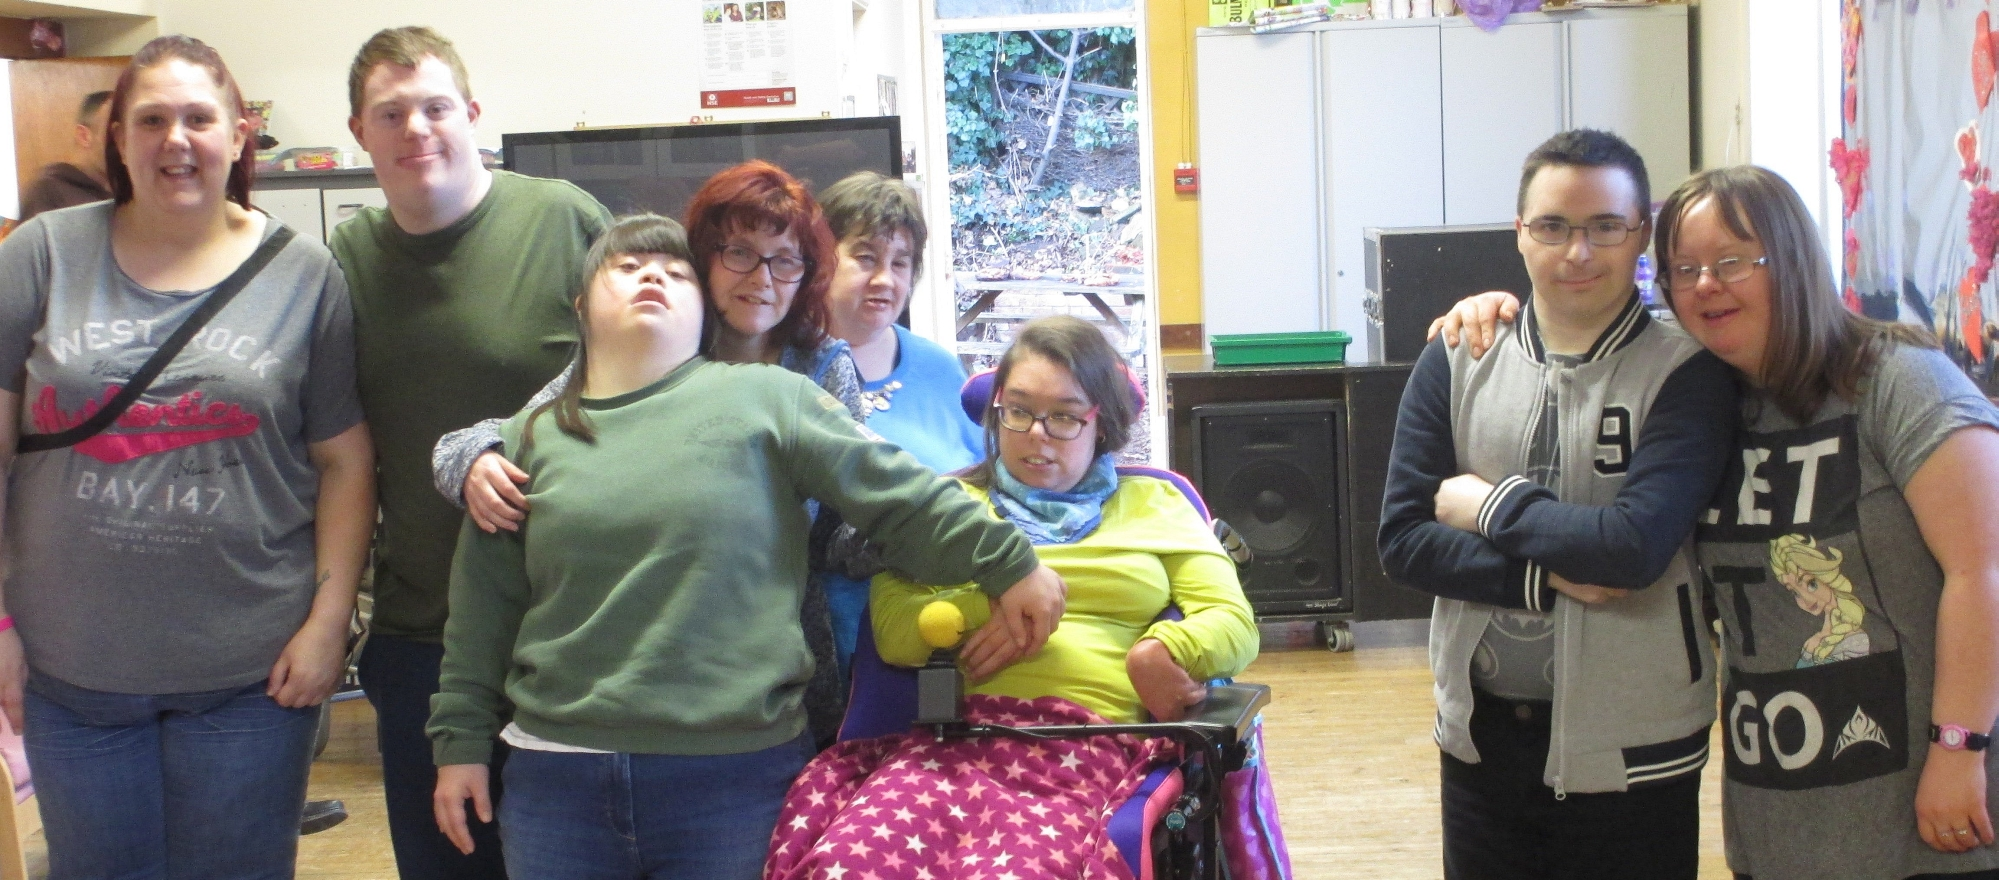 SD Mencap Pic Discoverers Group for younger adults with learning disabilities